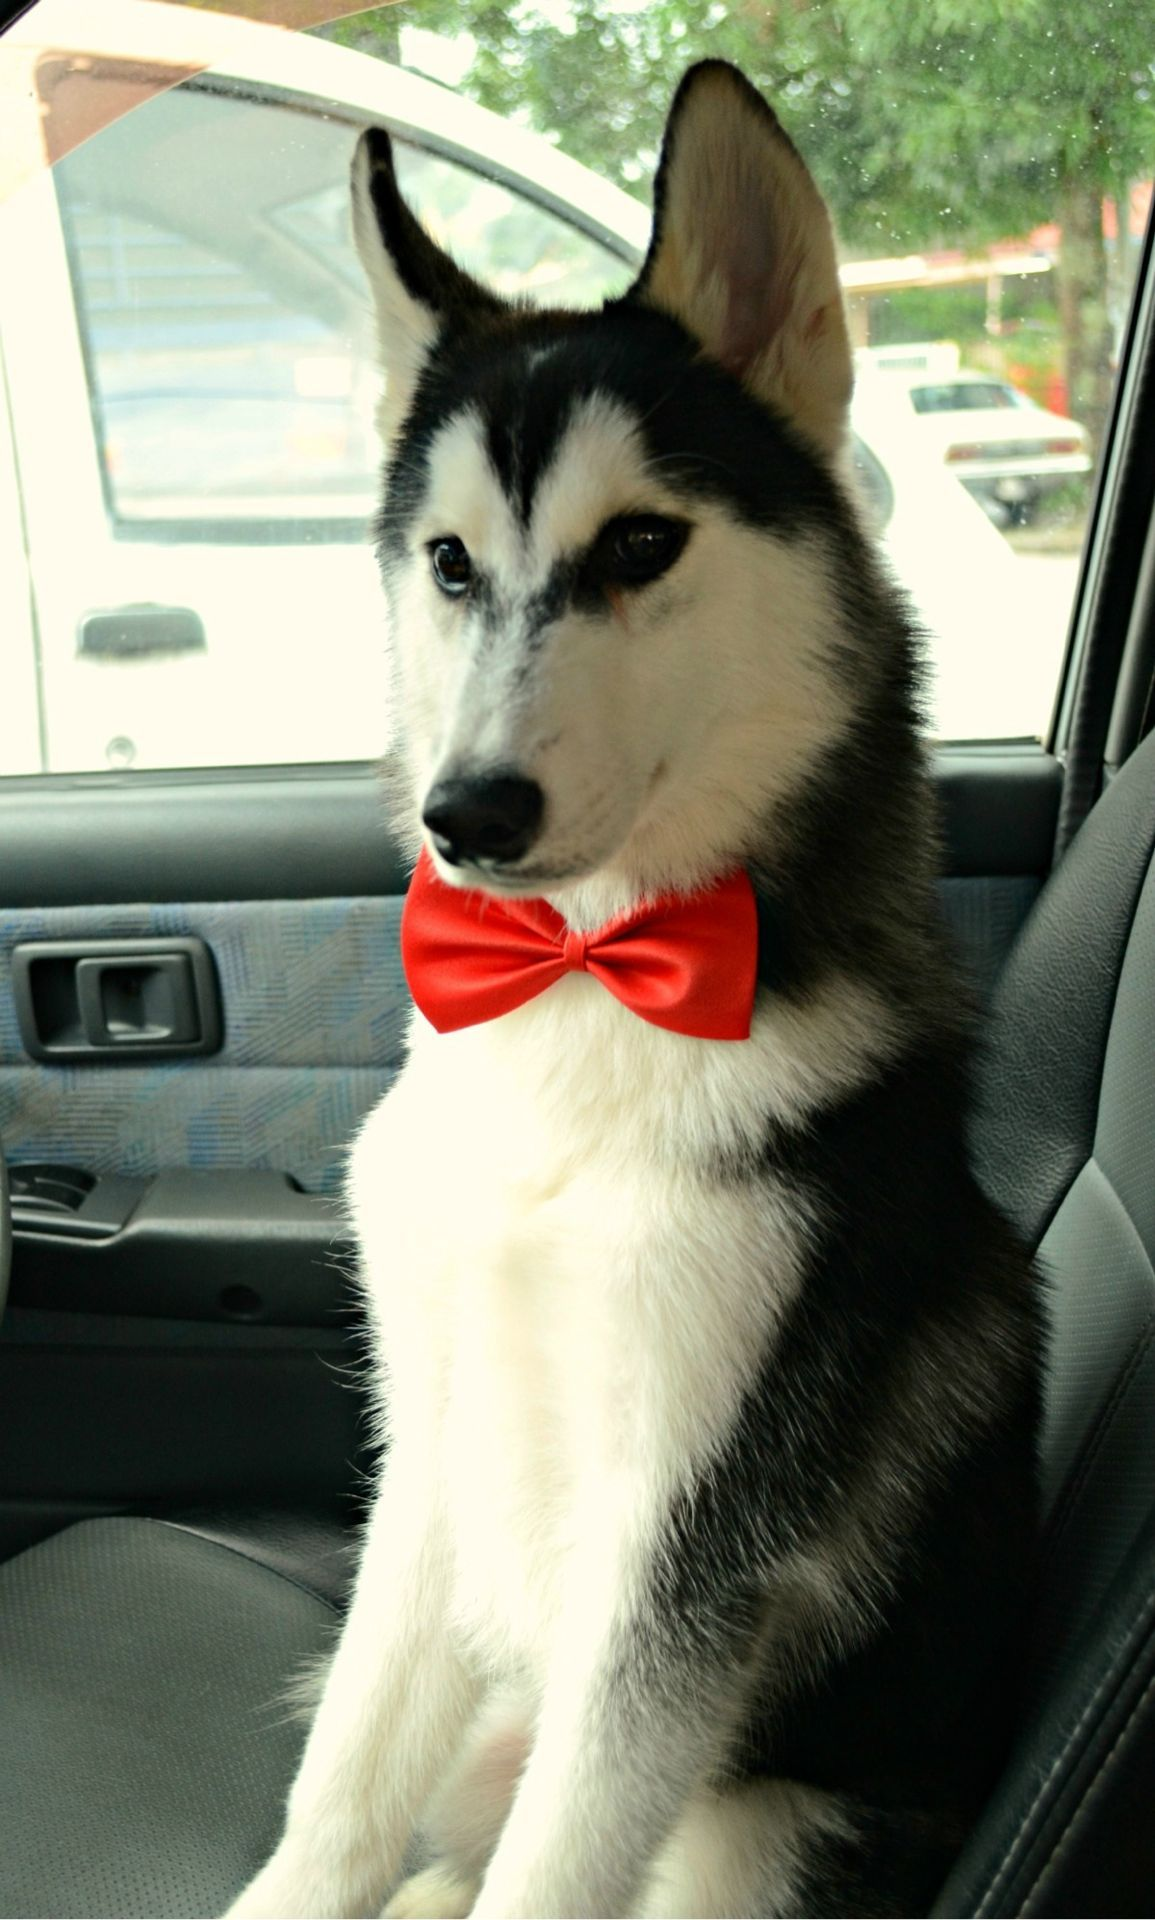 He's so snazzy | Cute dogs, Funny dog pictures, Cute animals